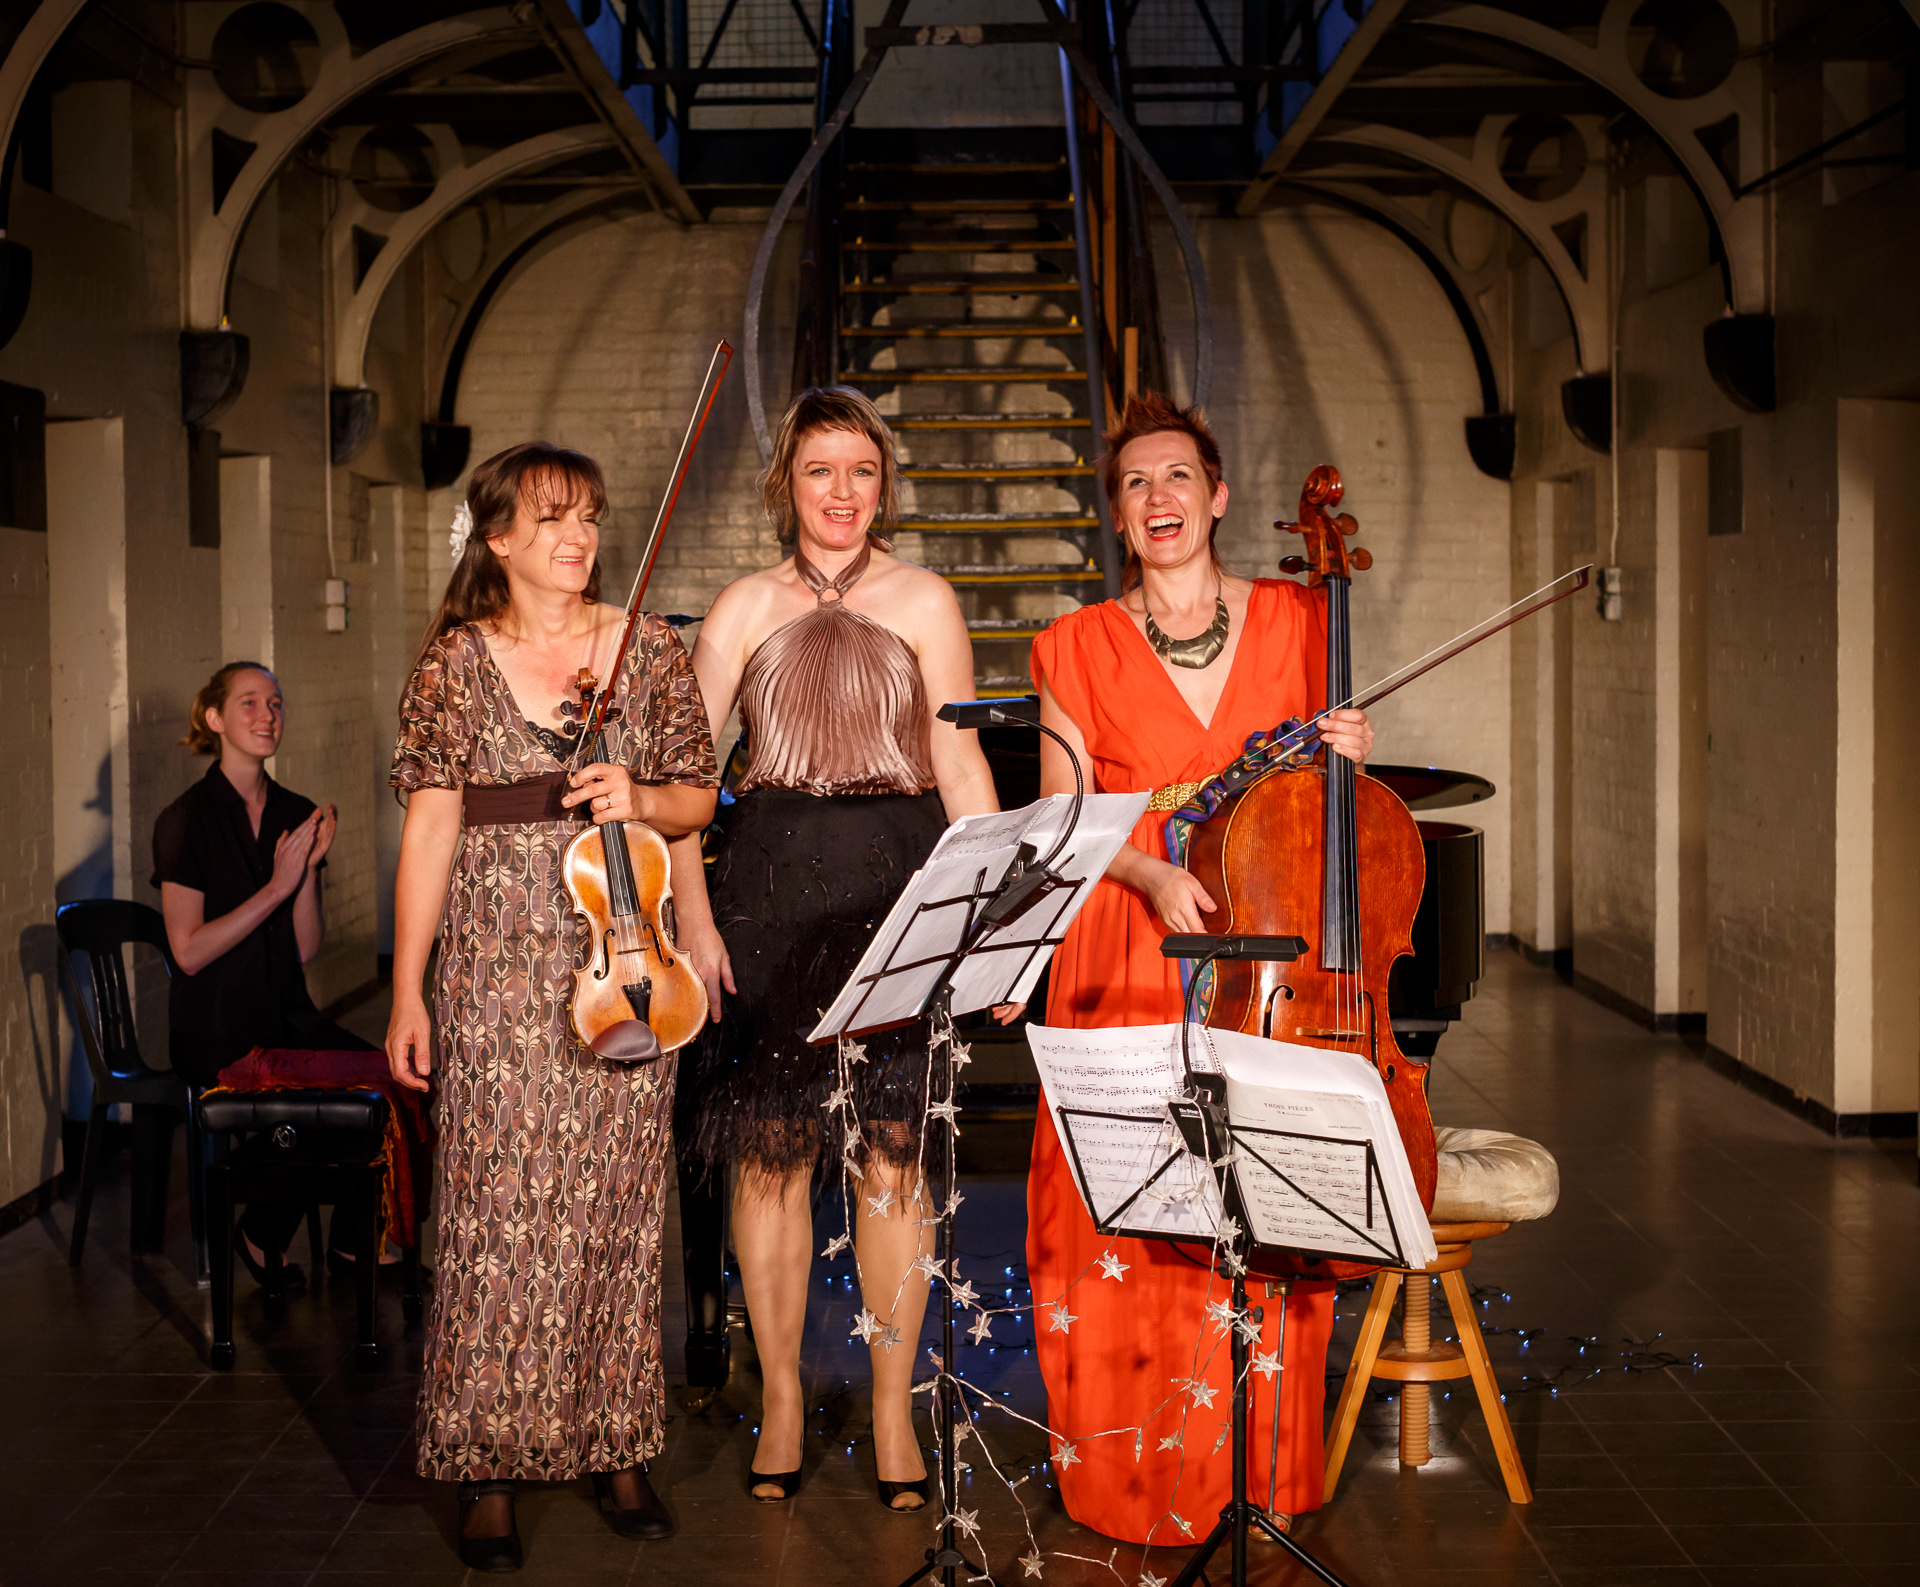 Pictured  (L to R): Alison Snook, with   The Muses Trio  —Christa Powell (violin), Therese Milanovic (piano), and Louise King (cello).  Picture Credit  : Geoff Lawrence,  Creative Futures Photography  .